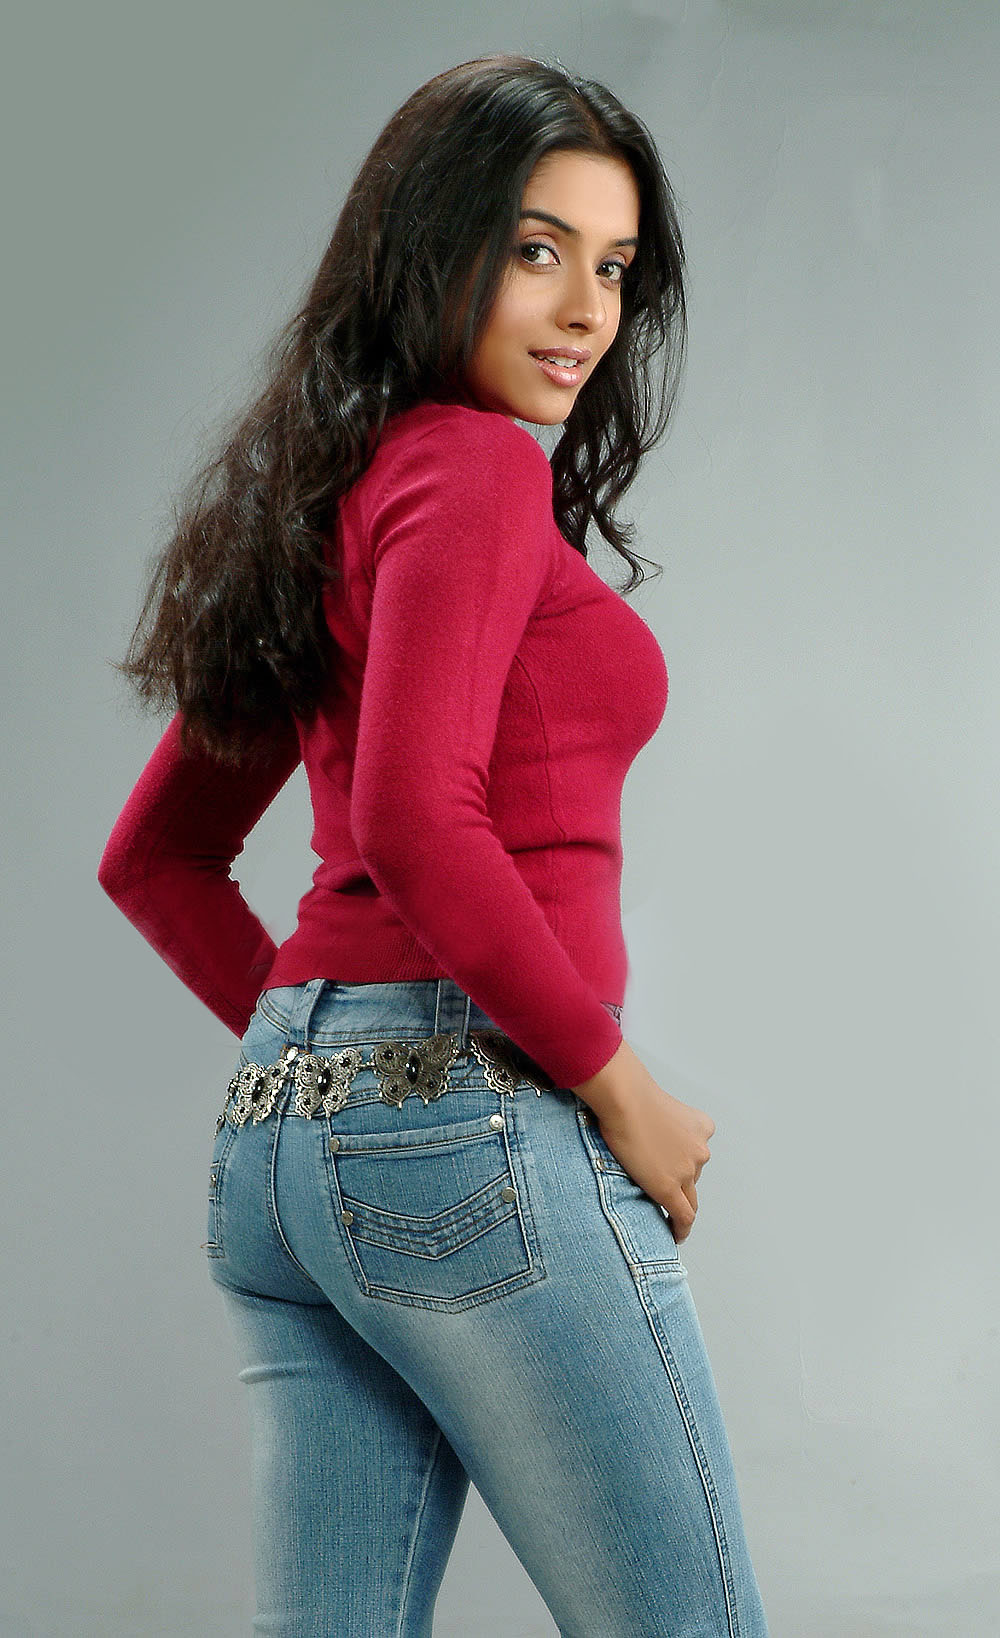 Asin Thottumkal Jeans And Shirt For Winter Sheclick Com